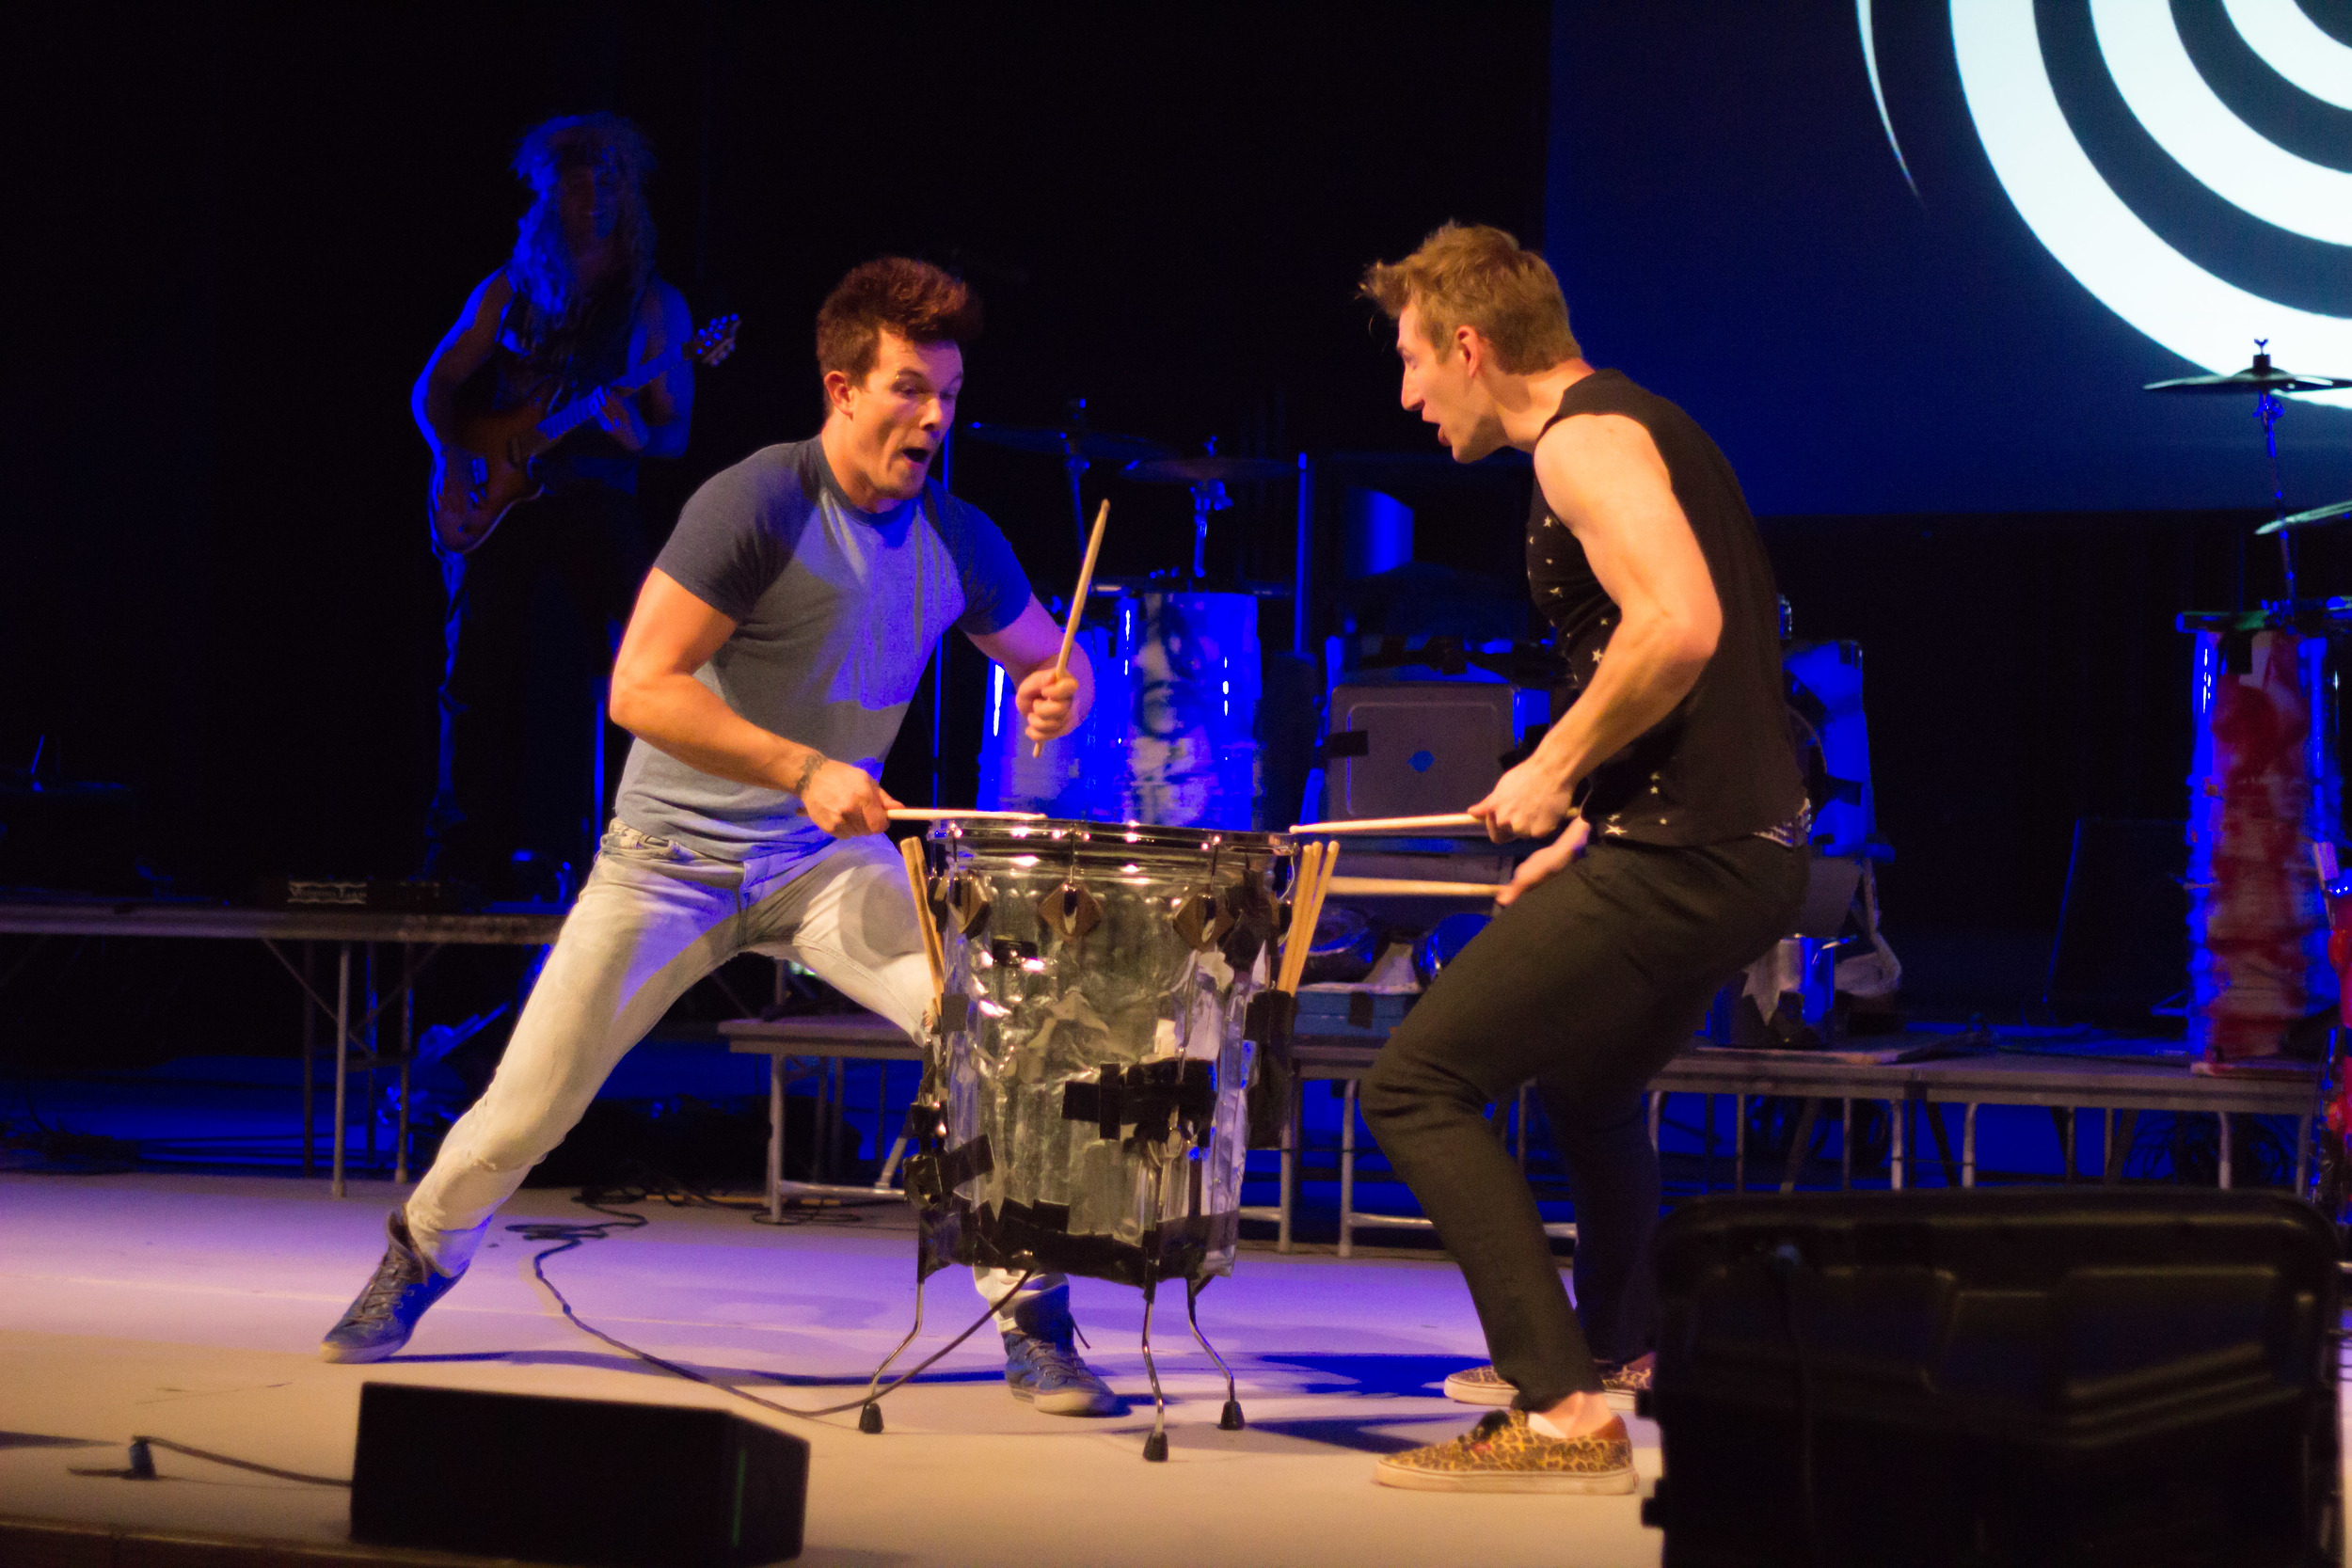 STAR // Brennan Chin   Recycled Percussion's performance featured trash can drumming and acrobatics.